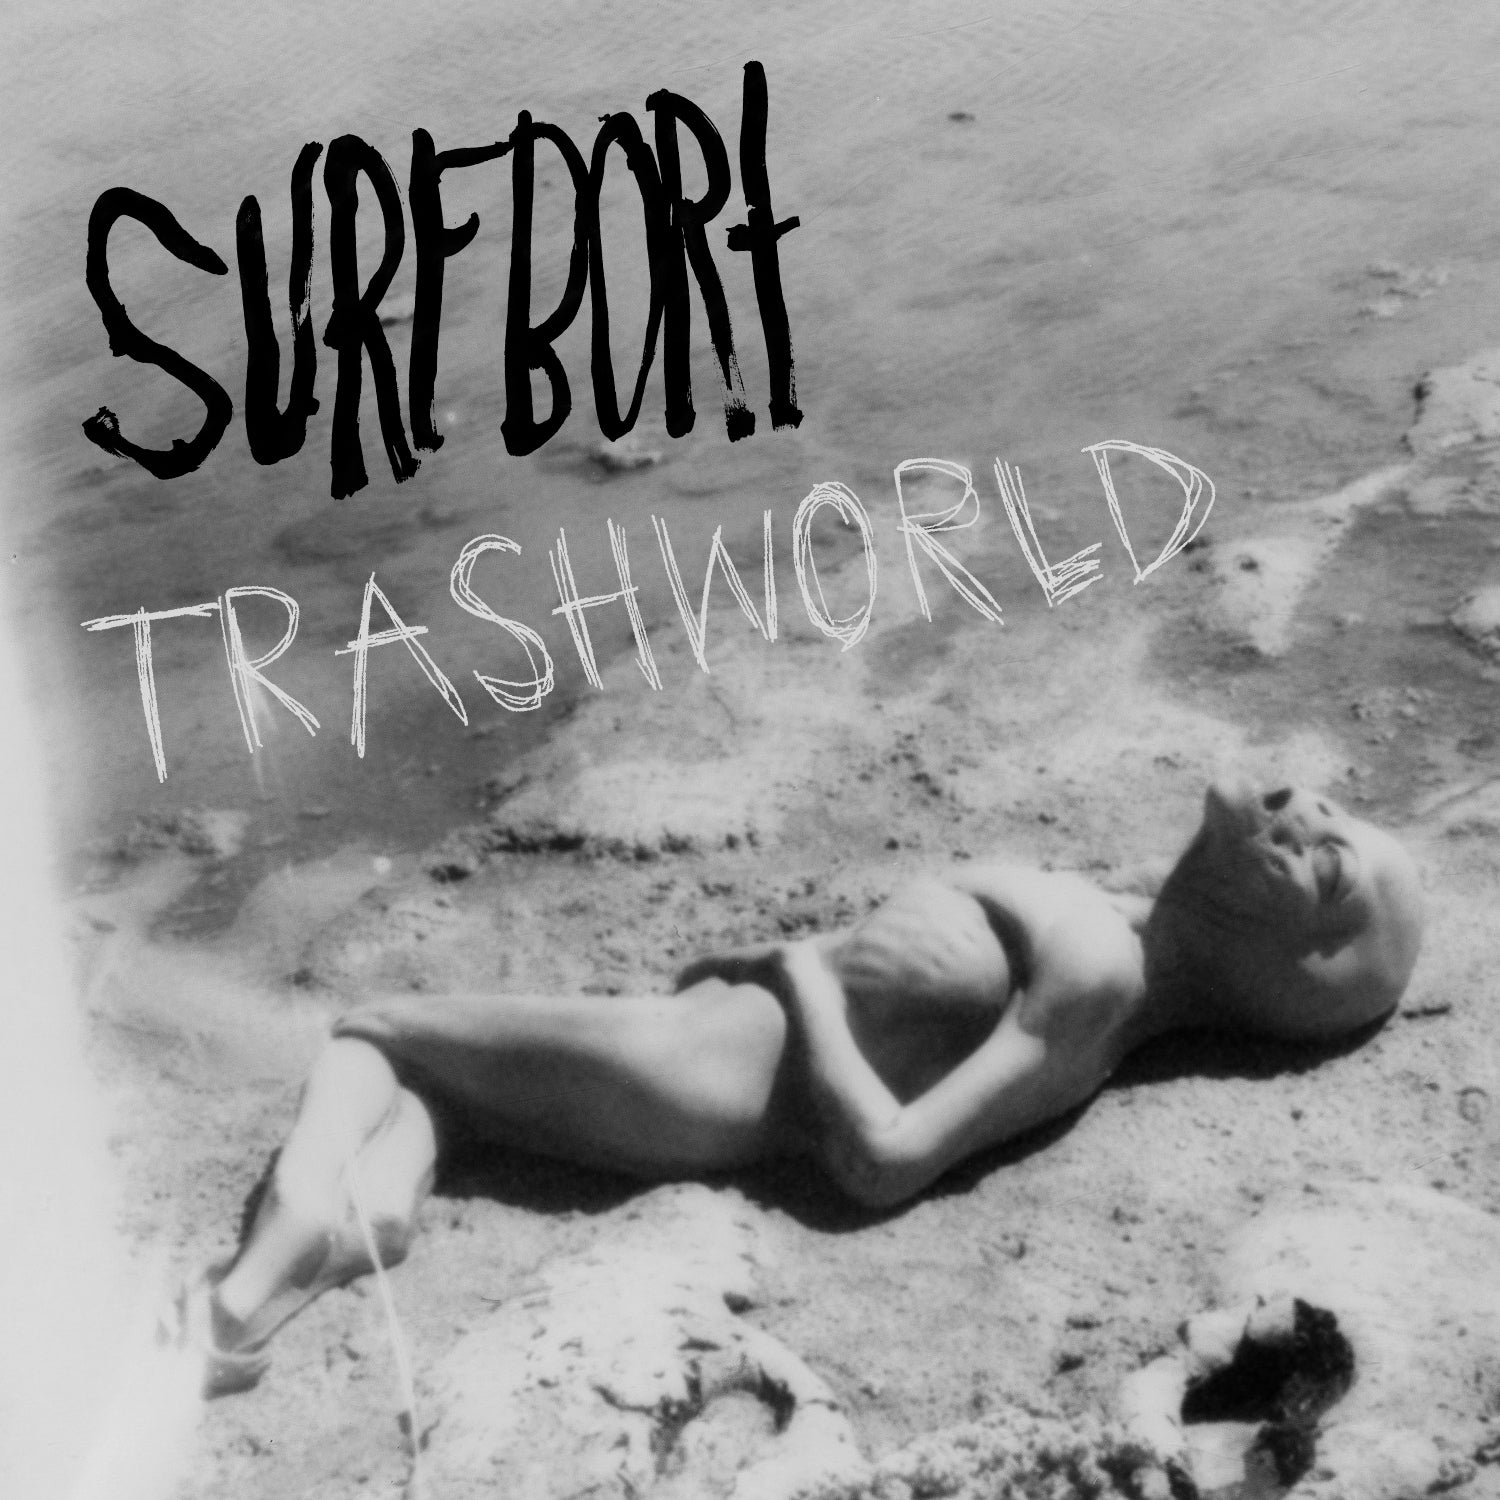 Surfbort 'Trashworld' Digital Download [Single]